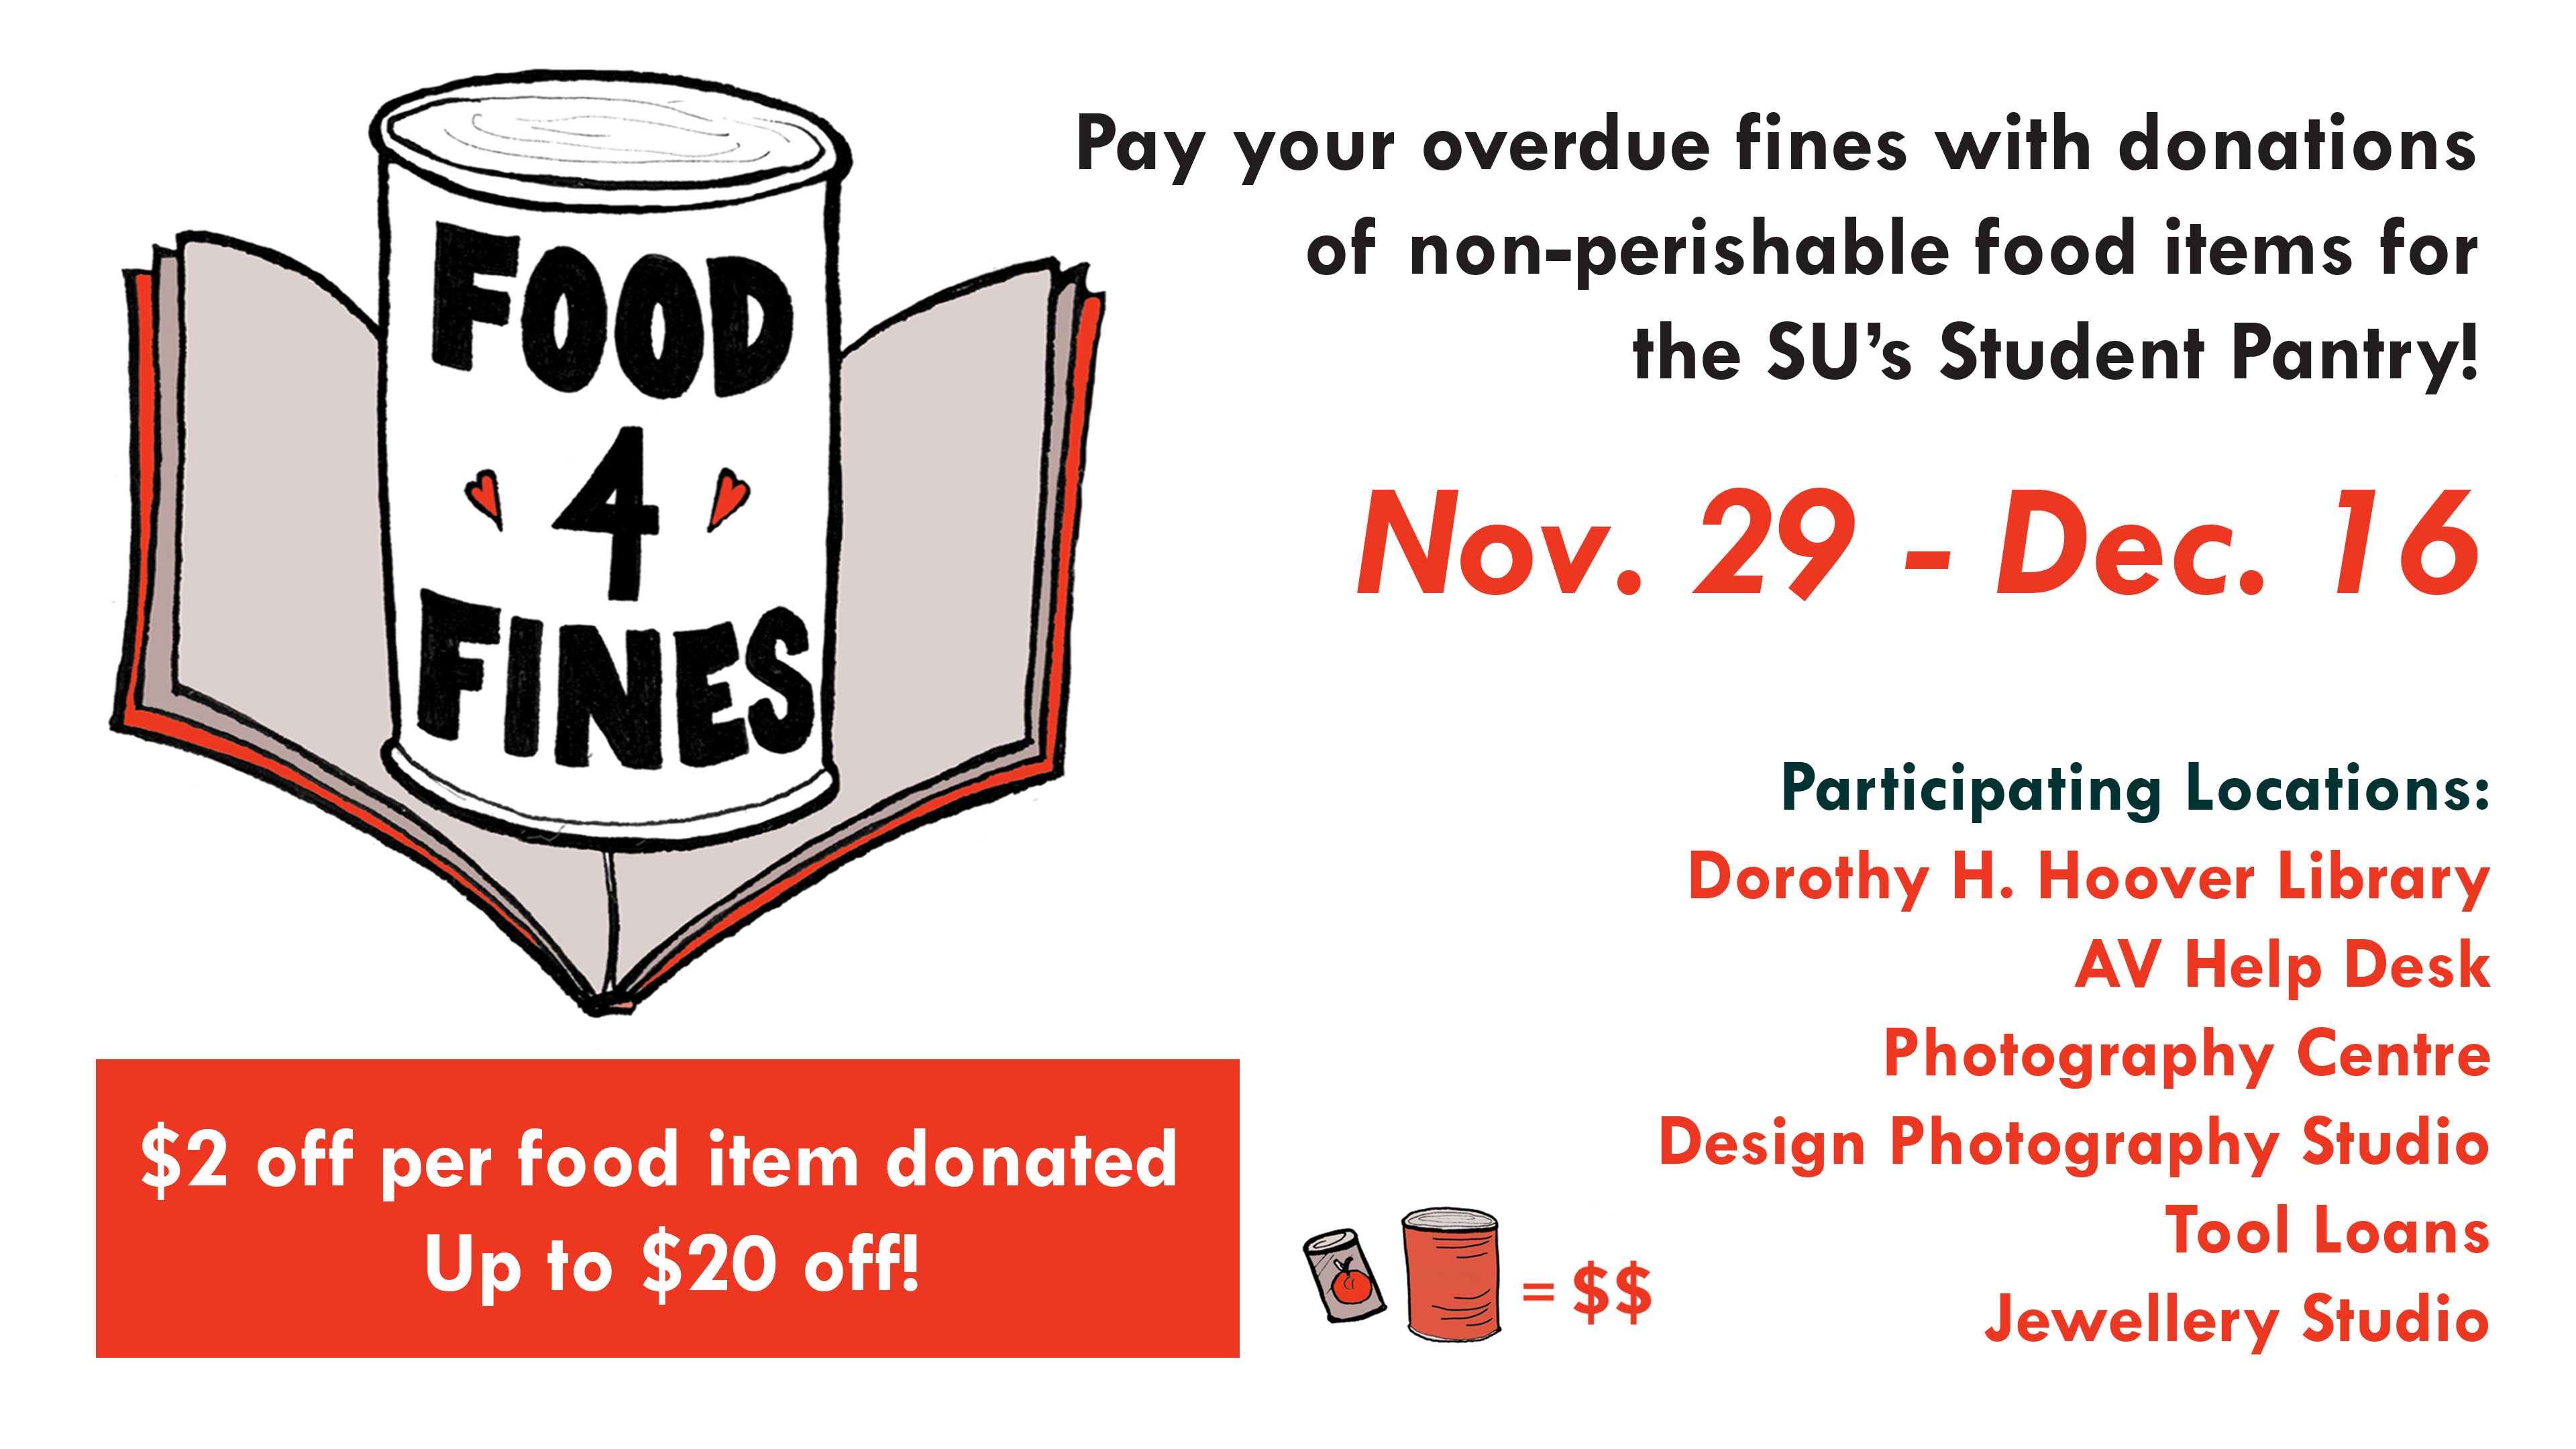 Food 4 Fines, Nov. 29 - Dec. 16, $2 off per food item donated. Up to $20 off!